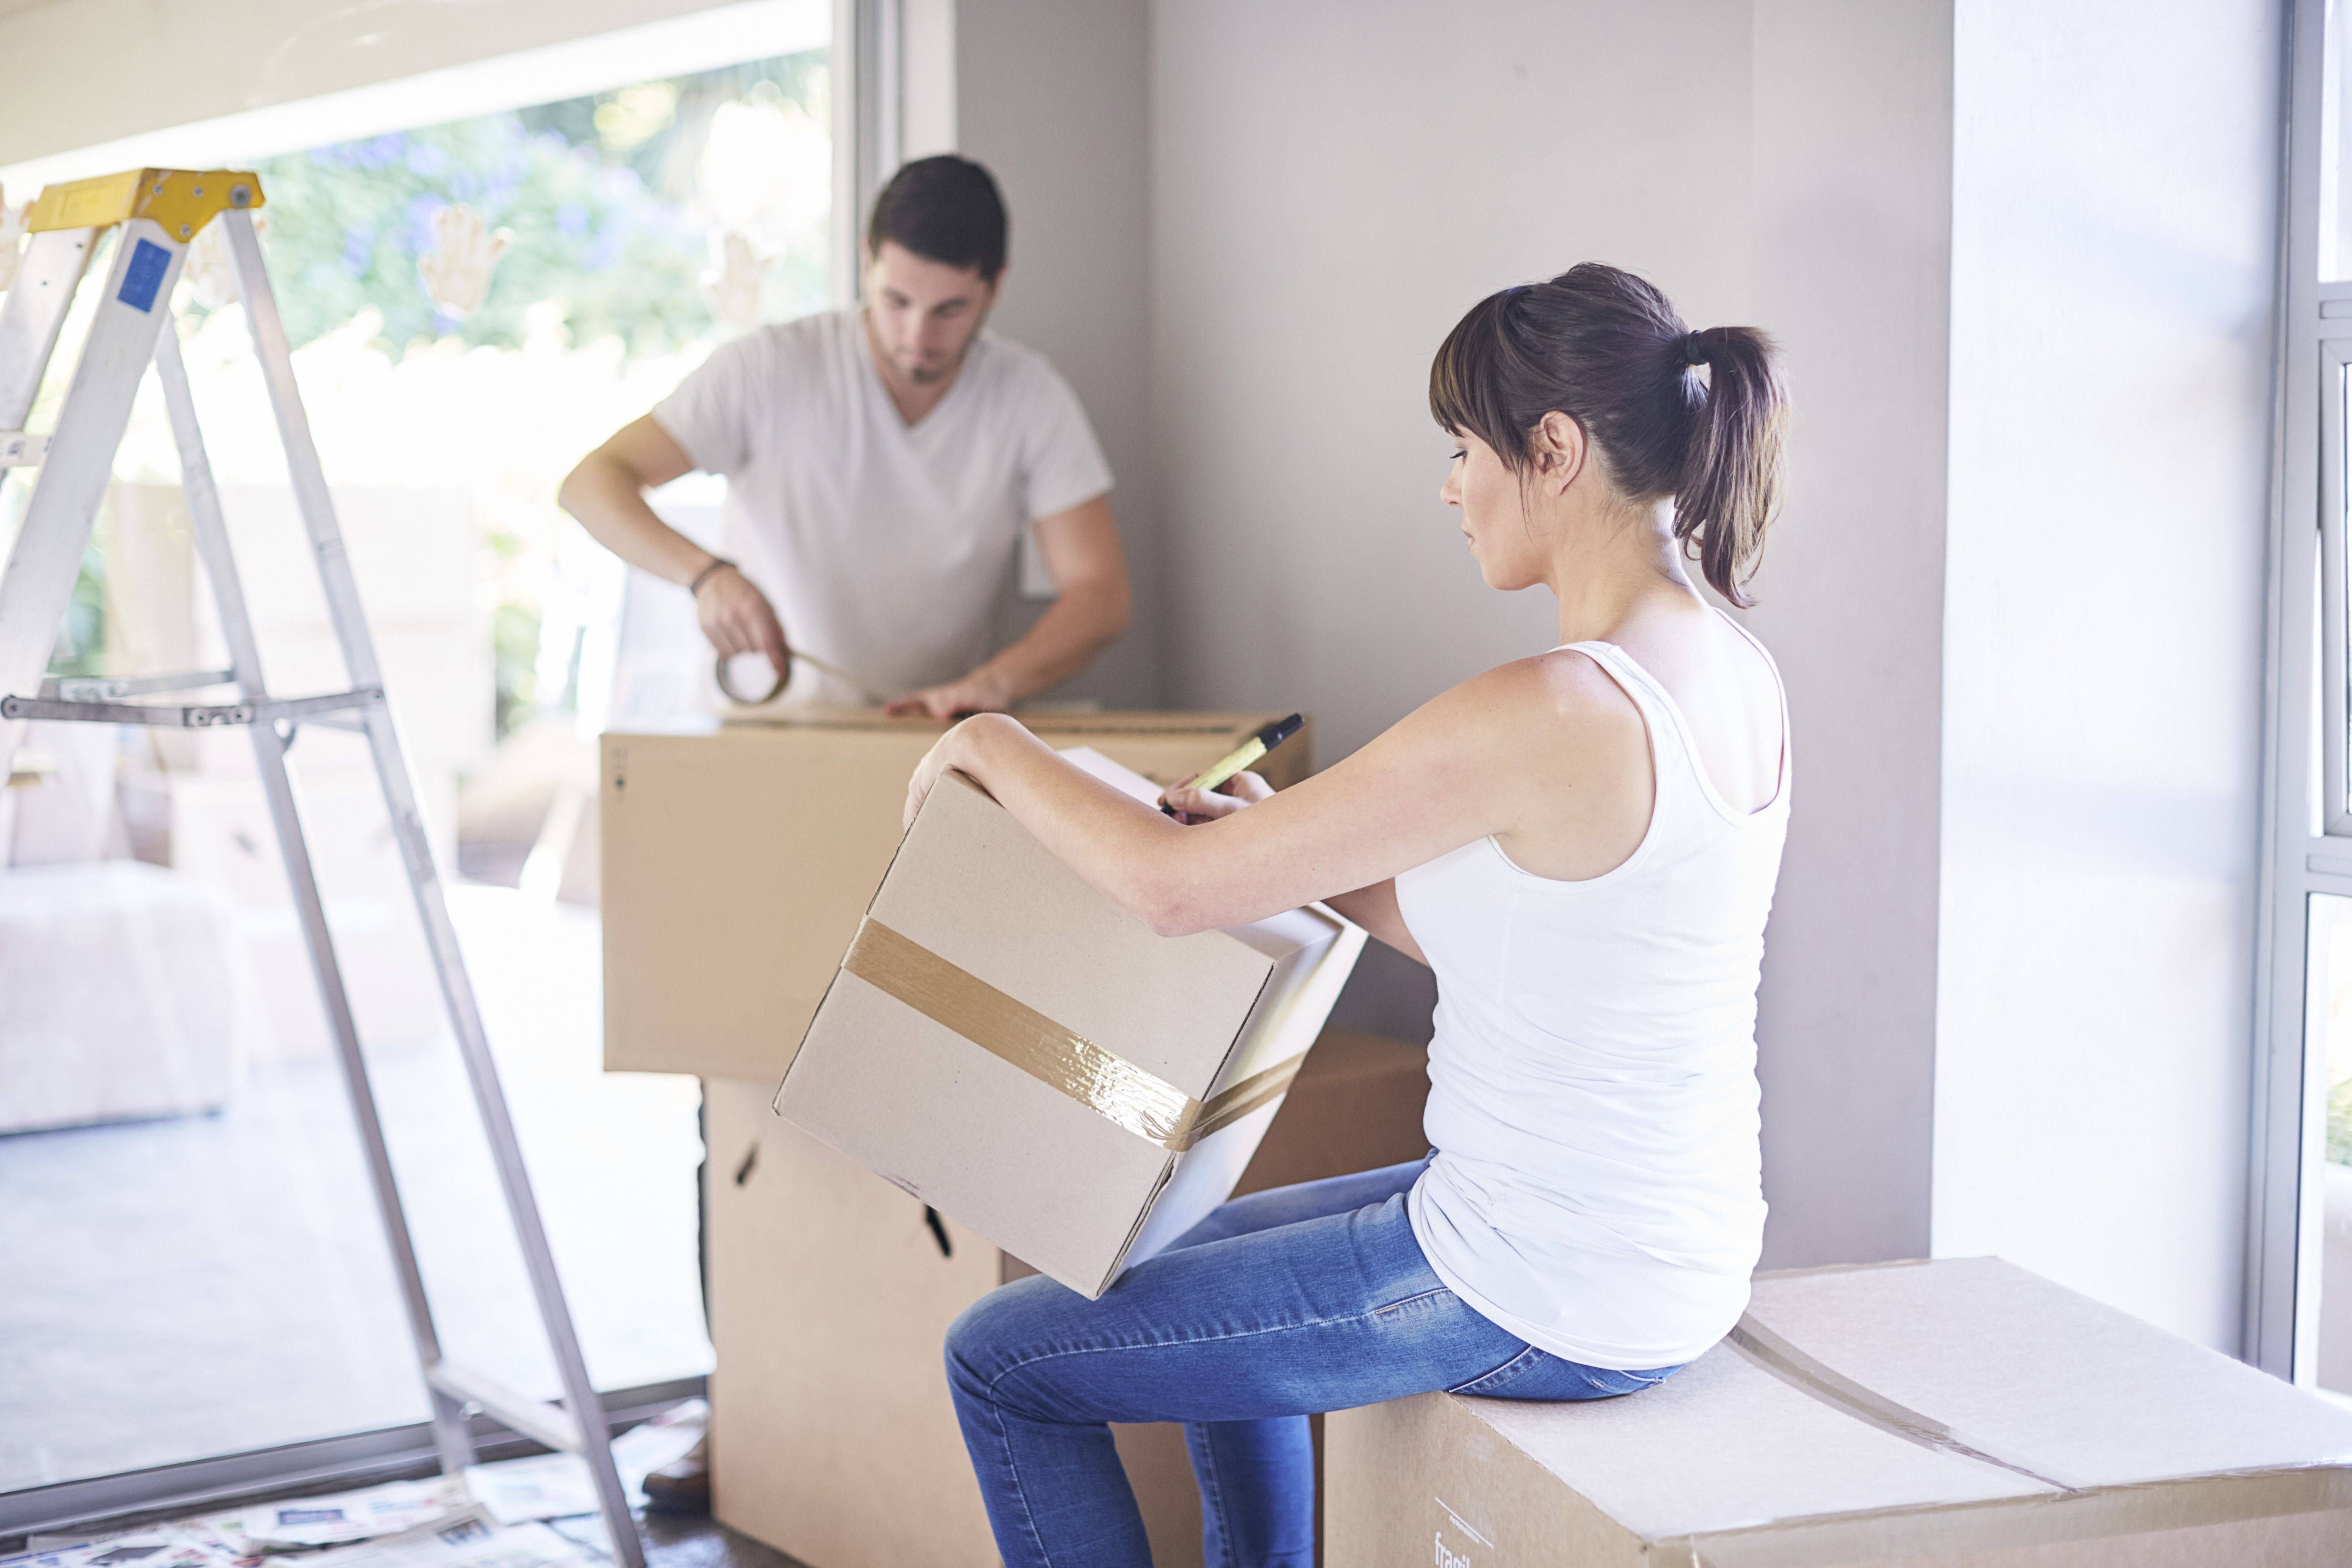 Couple moving house, woman writing on box